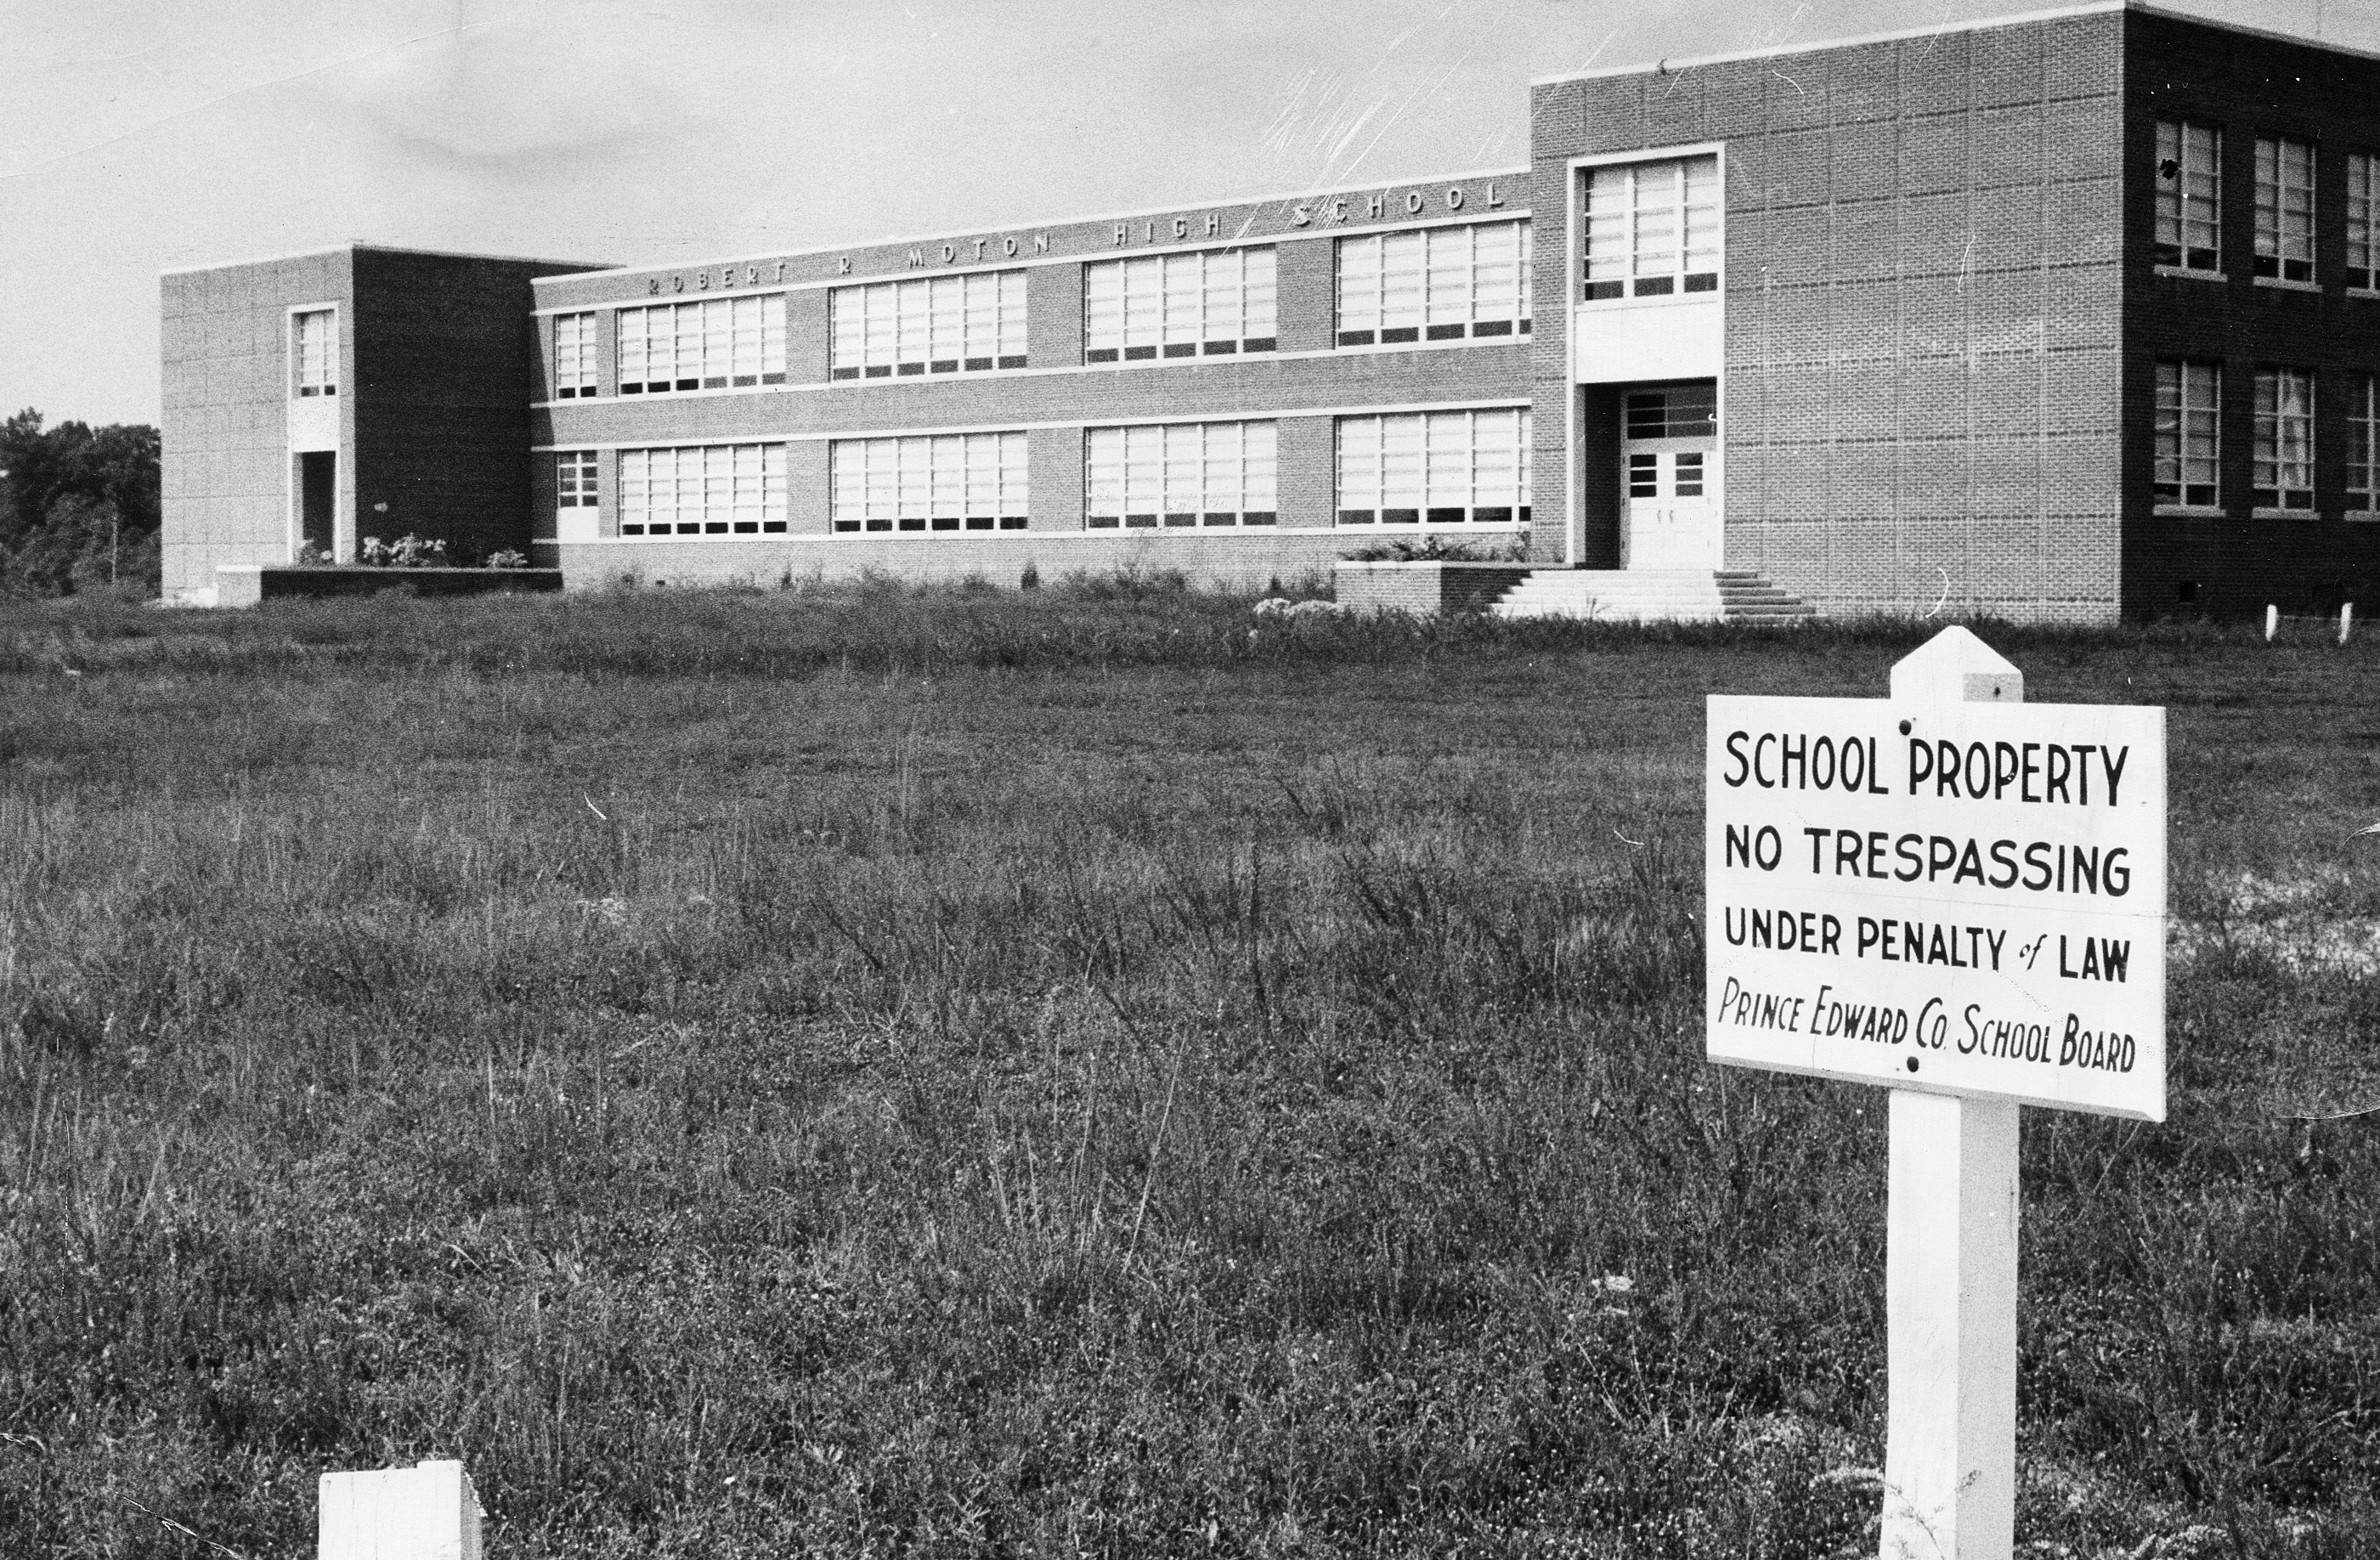 An image of a closed school with a no trespassing sign